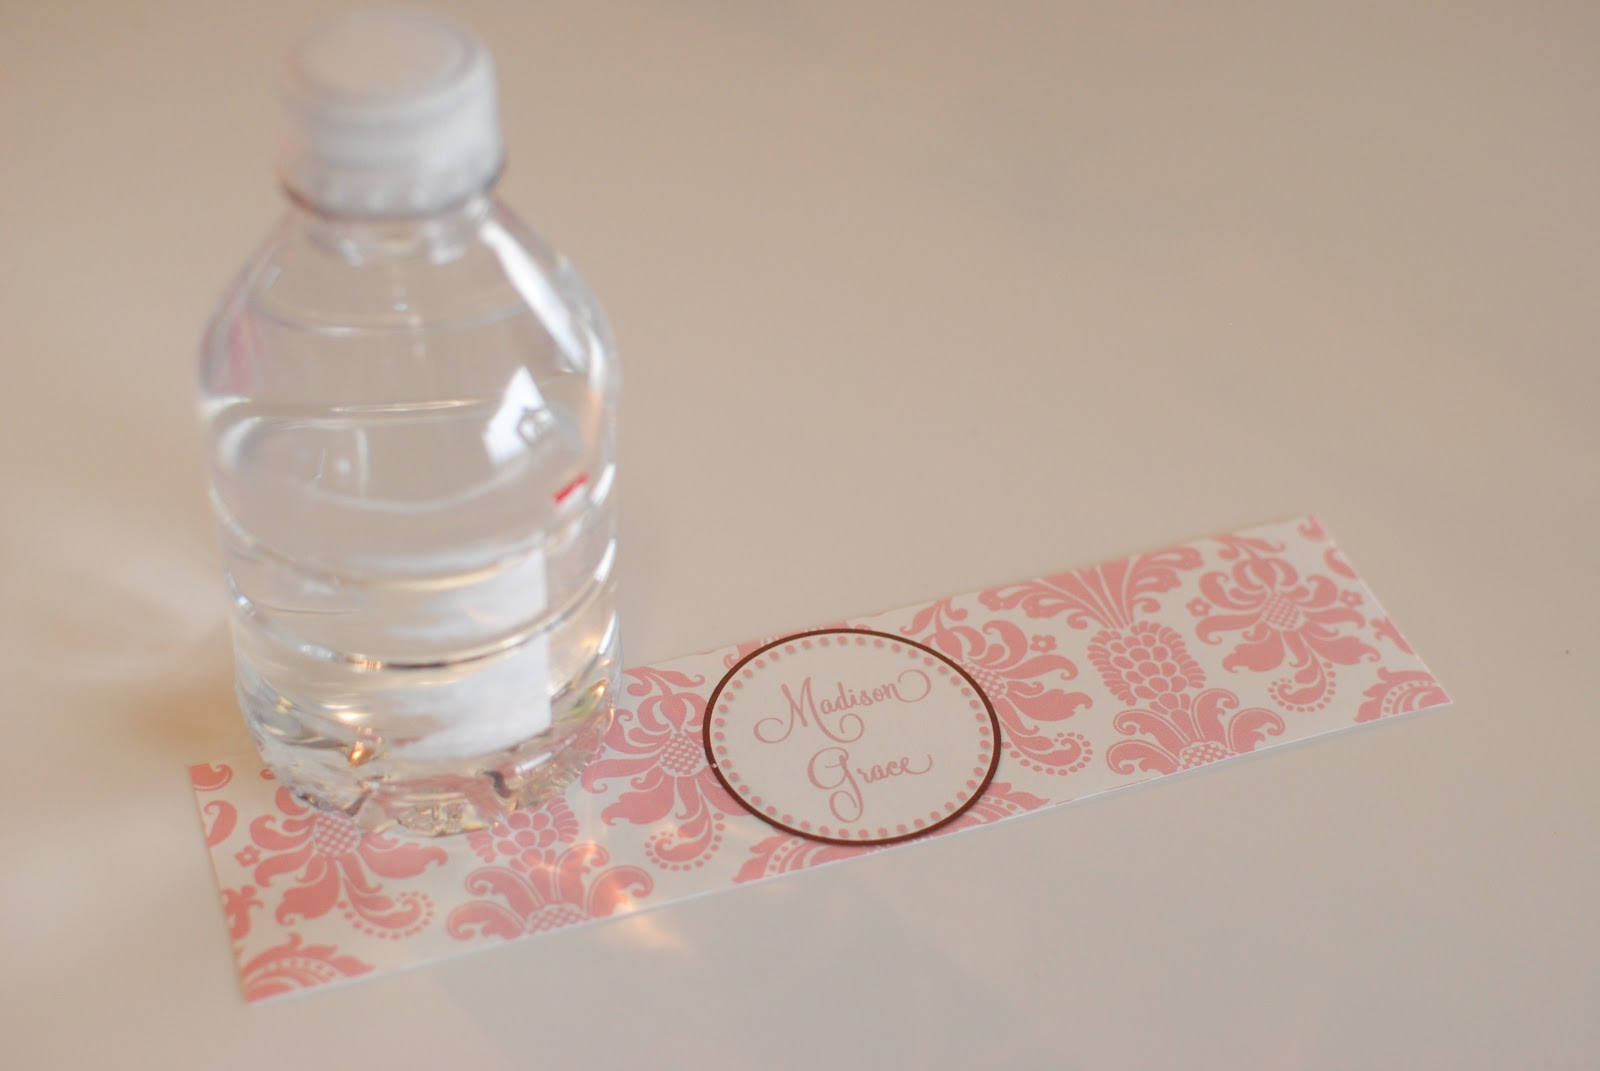 Life sweet life diy printable water bottle labels diy printable water bottle labels maxwellsz